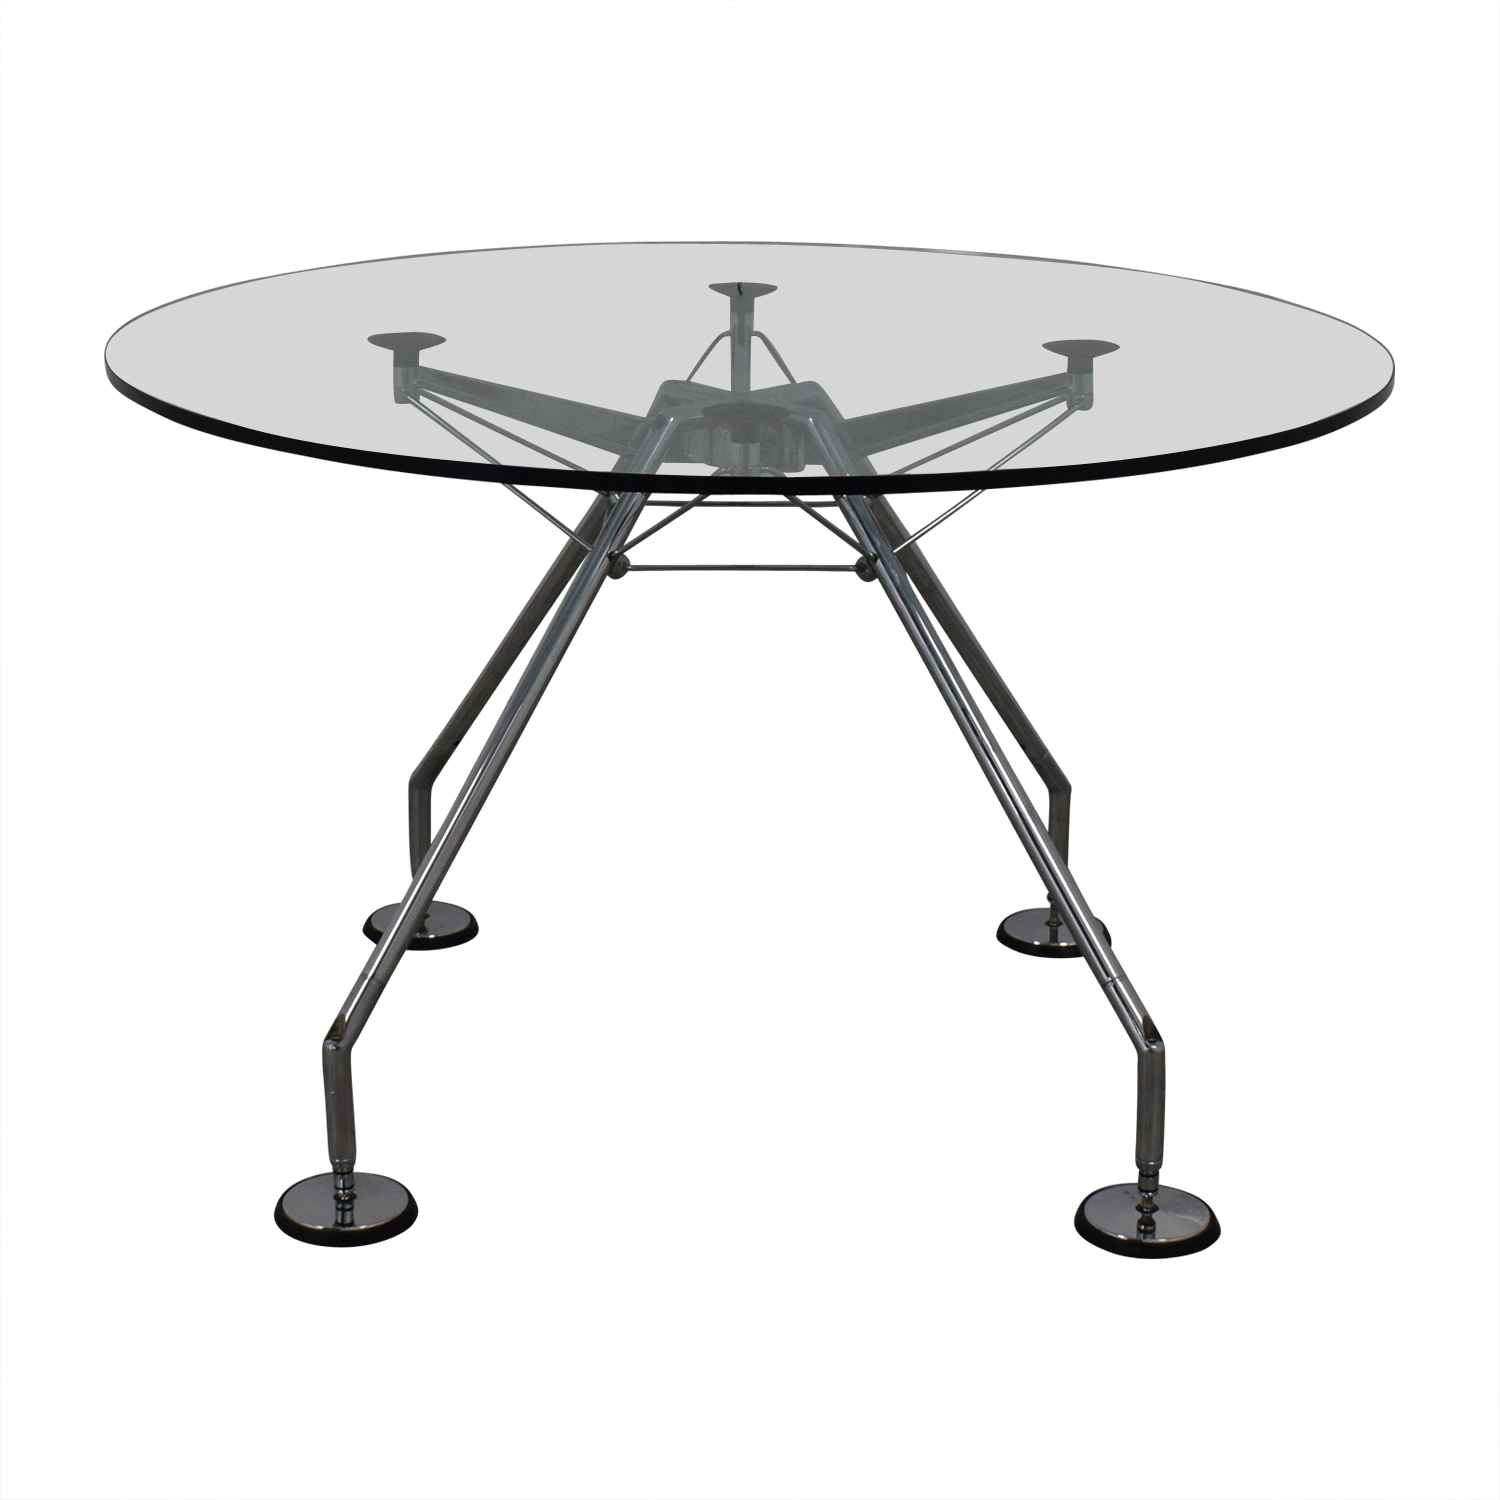 Tecno Tecno Nomos Circular Table Tables